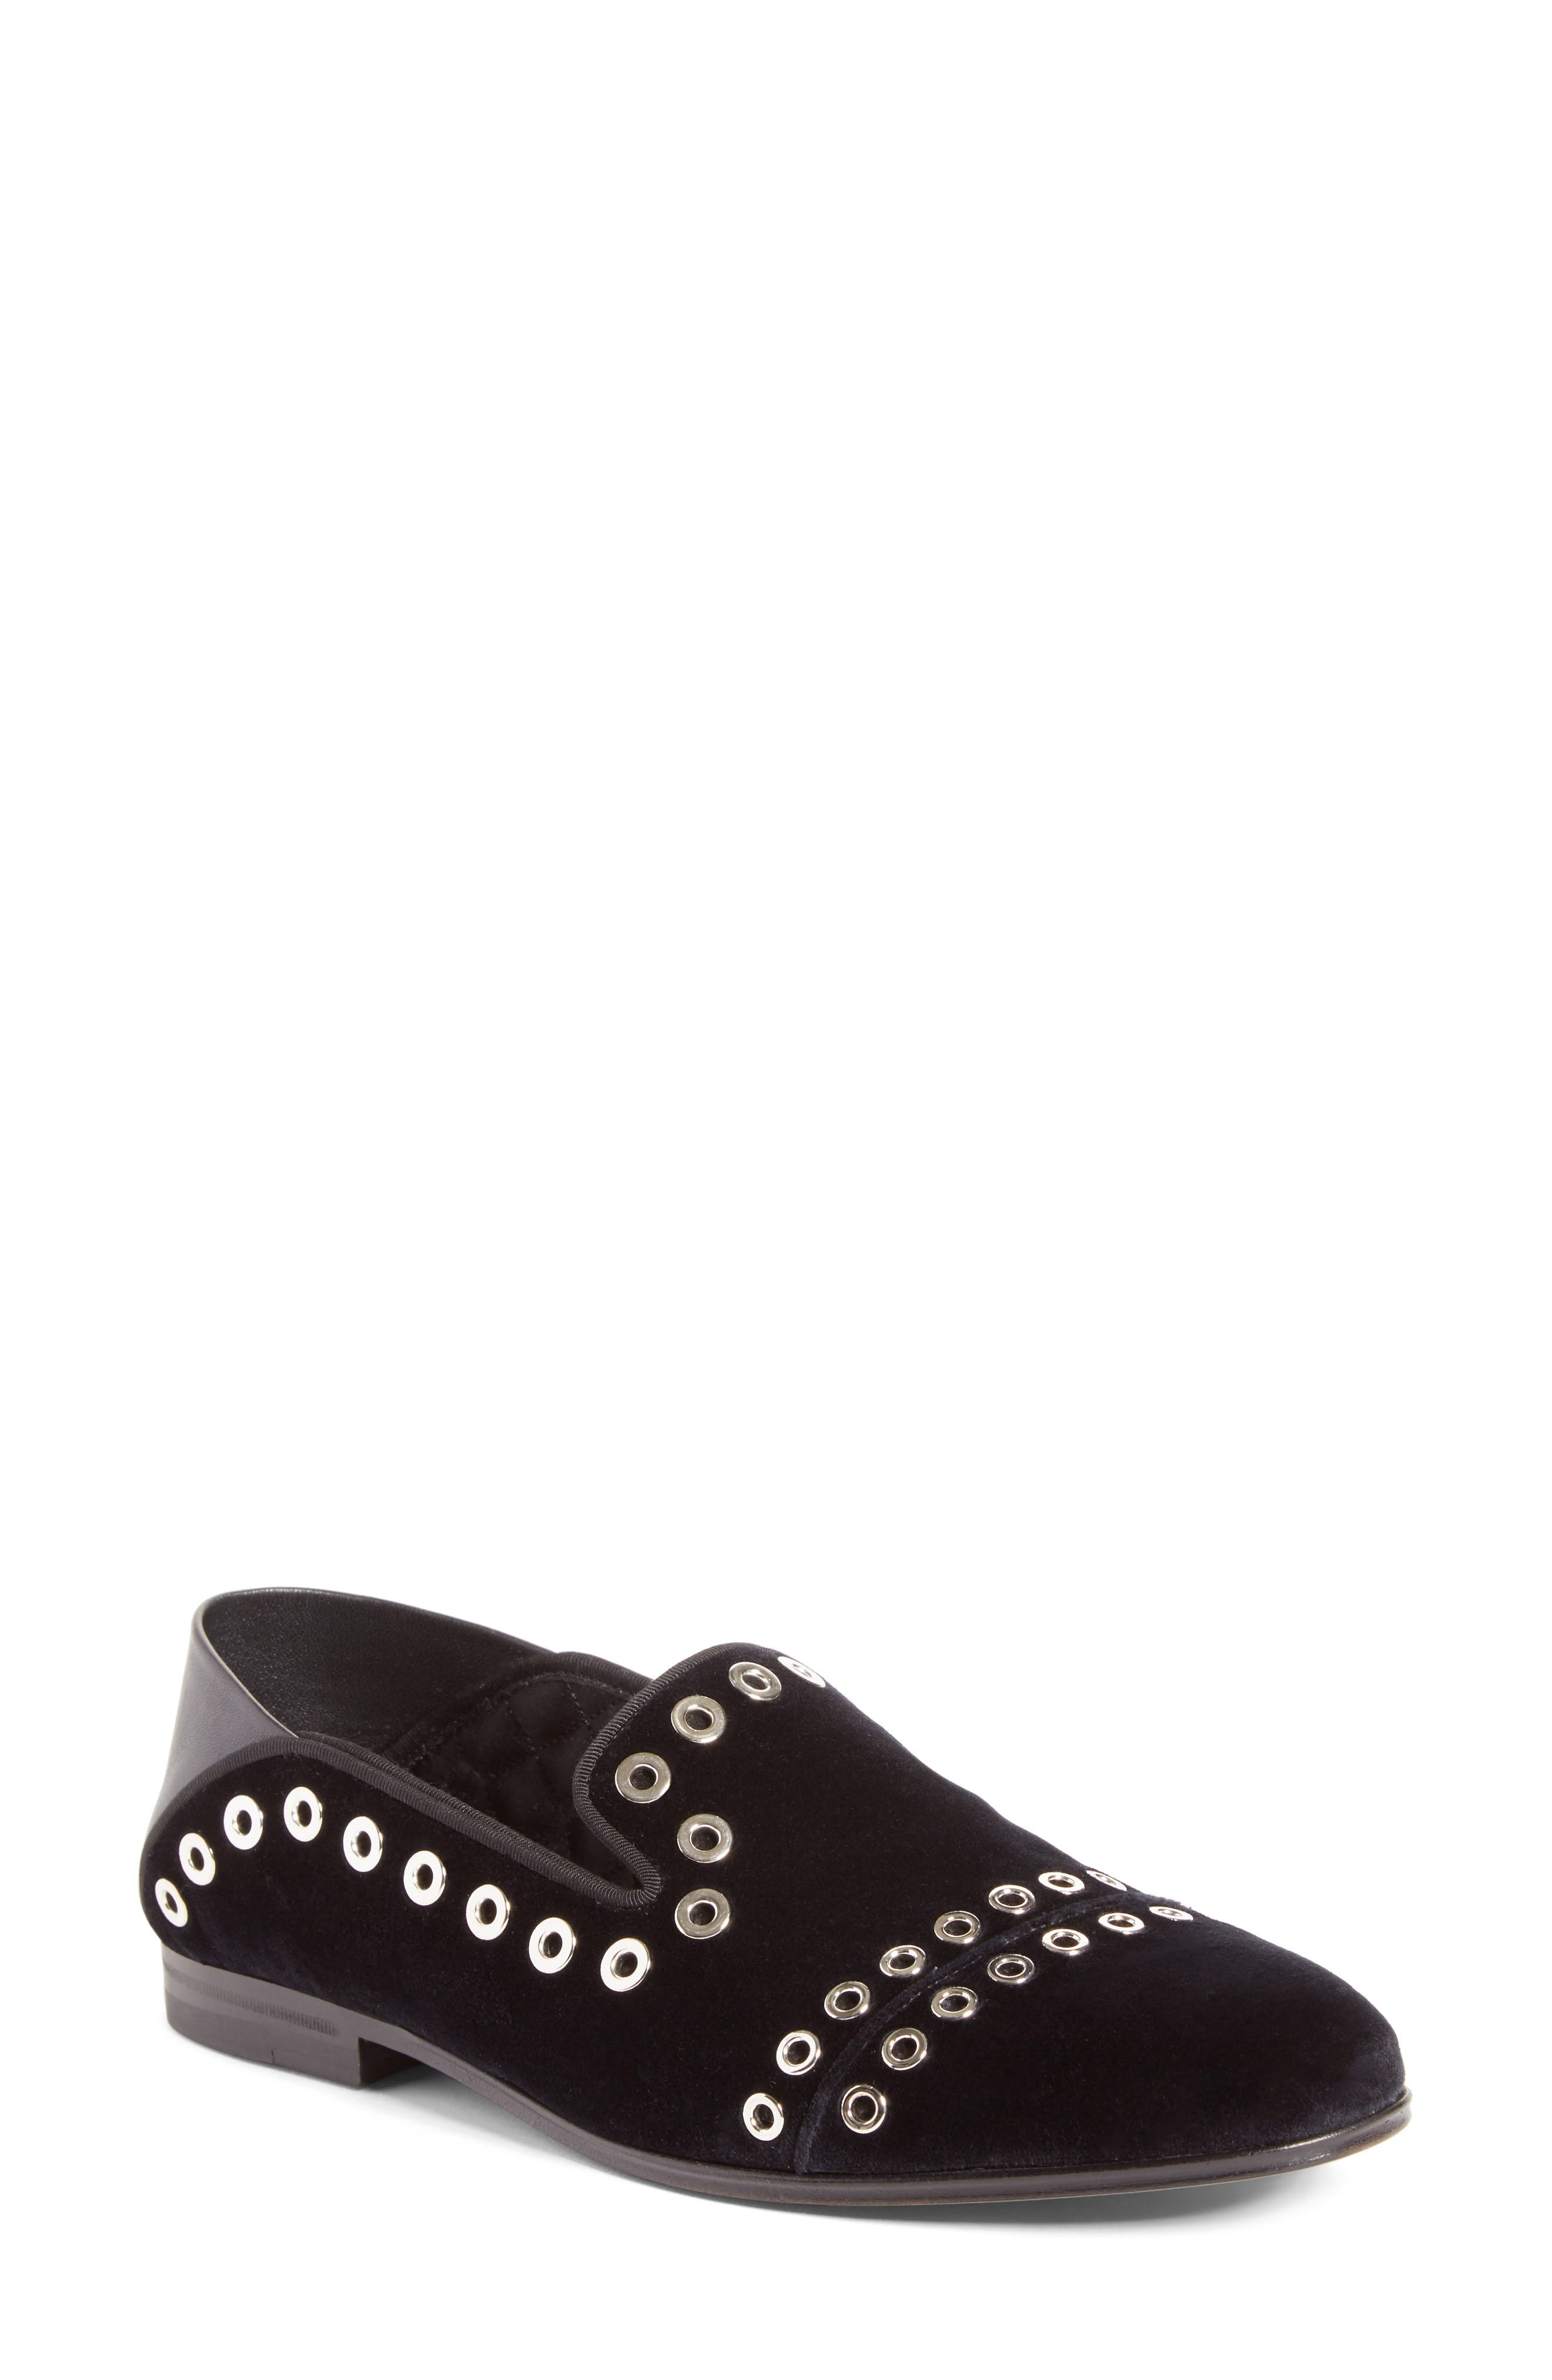 Grommet Convertible Loafer,                         Main,                         color, 001